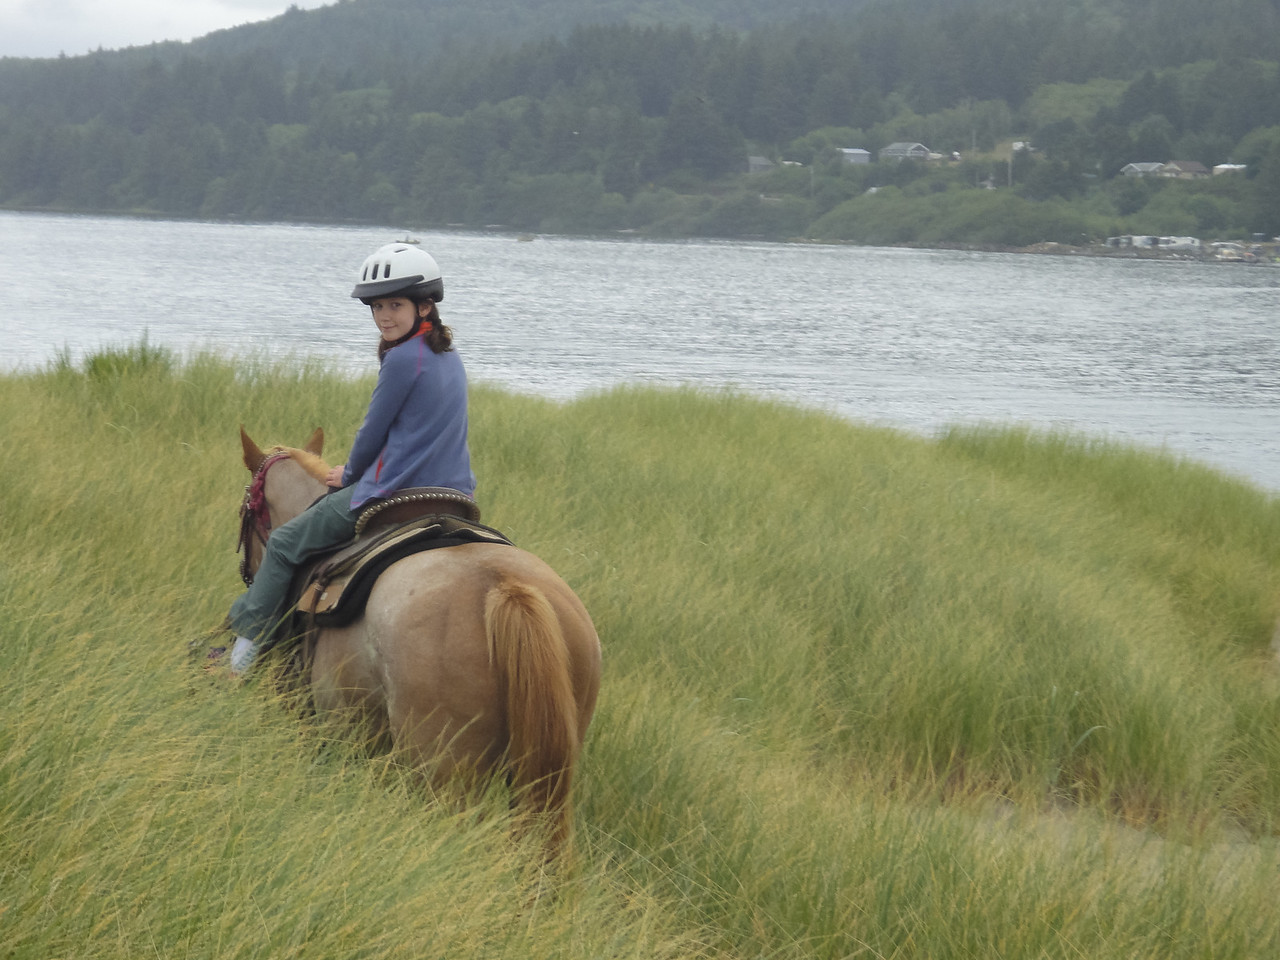 Ruby and Anne horseback riding along the beaches of Oregon.